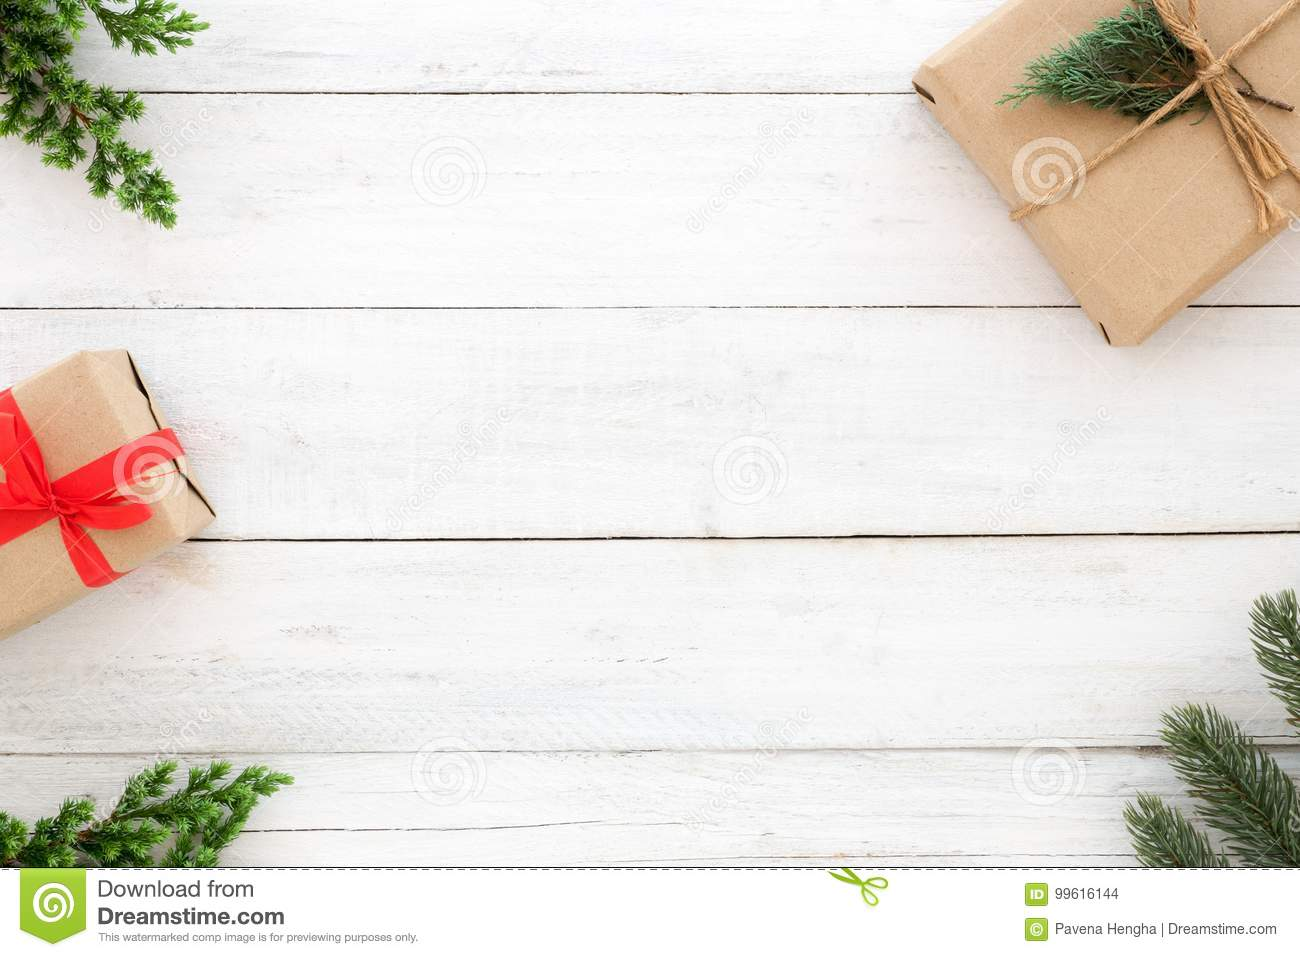 Christmas present gift boxes and fir leaves decoration rustic elements on white wood background